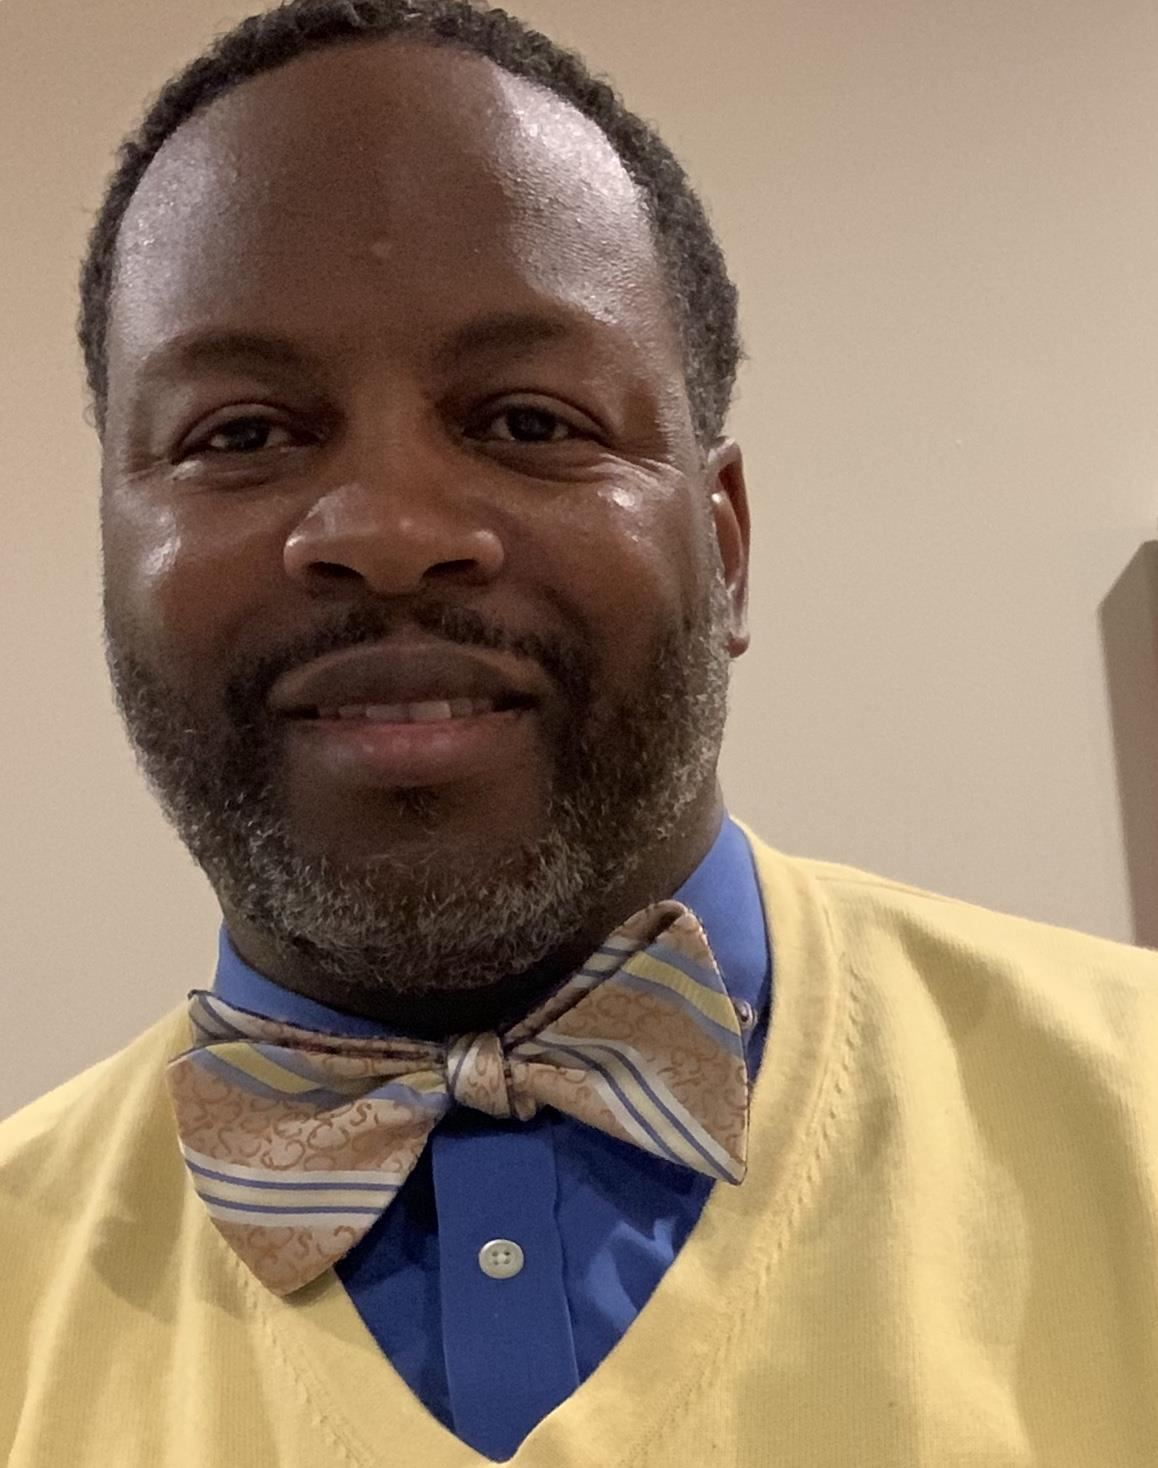 Mr. Felix Ruffin, Assistant Principal